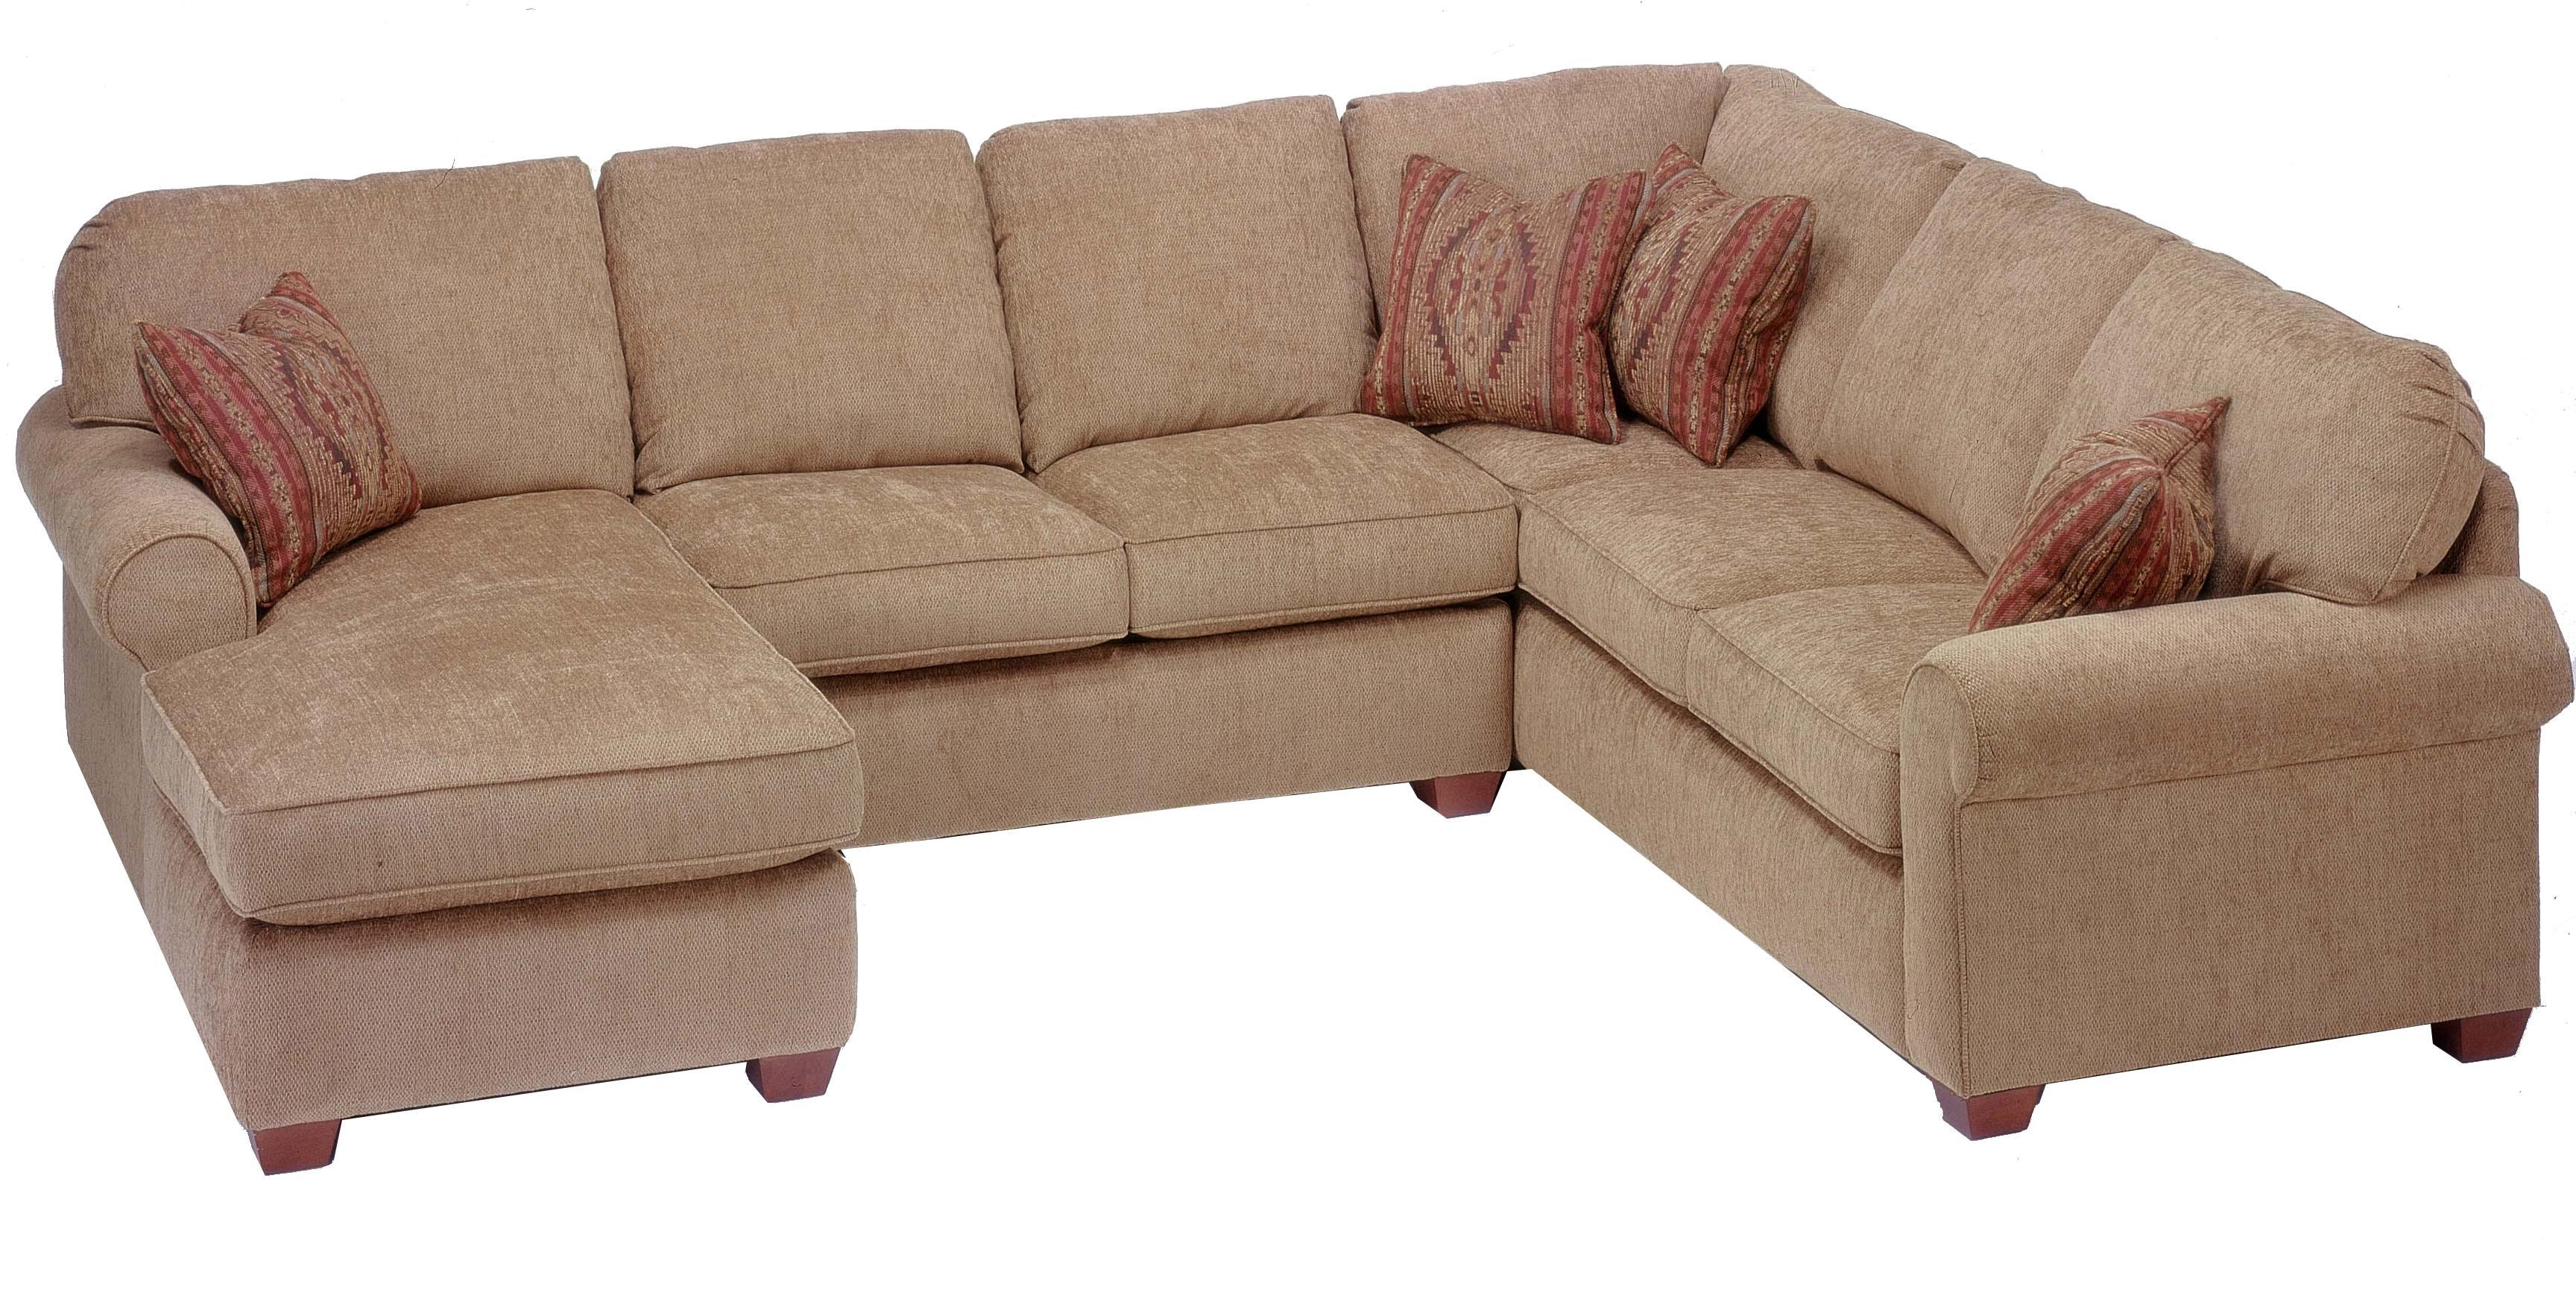 Flexsteel Thornton 3 Piece Sectional With Chaise – Rooms And Rest Regarding Alan White Couches (Image 19 of 20)